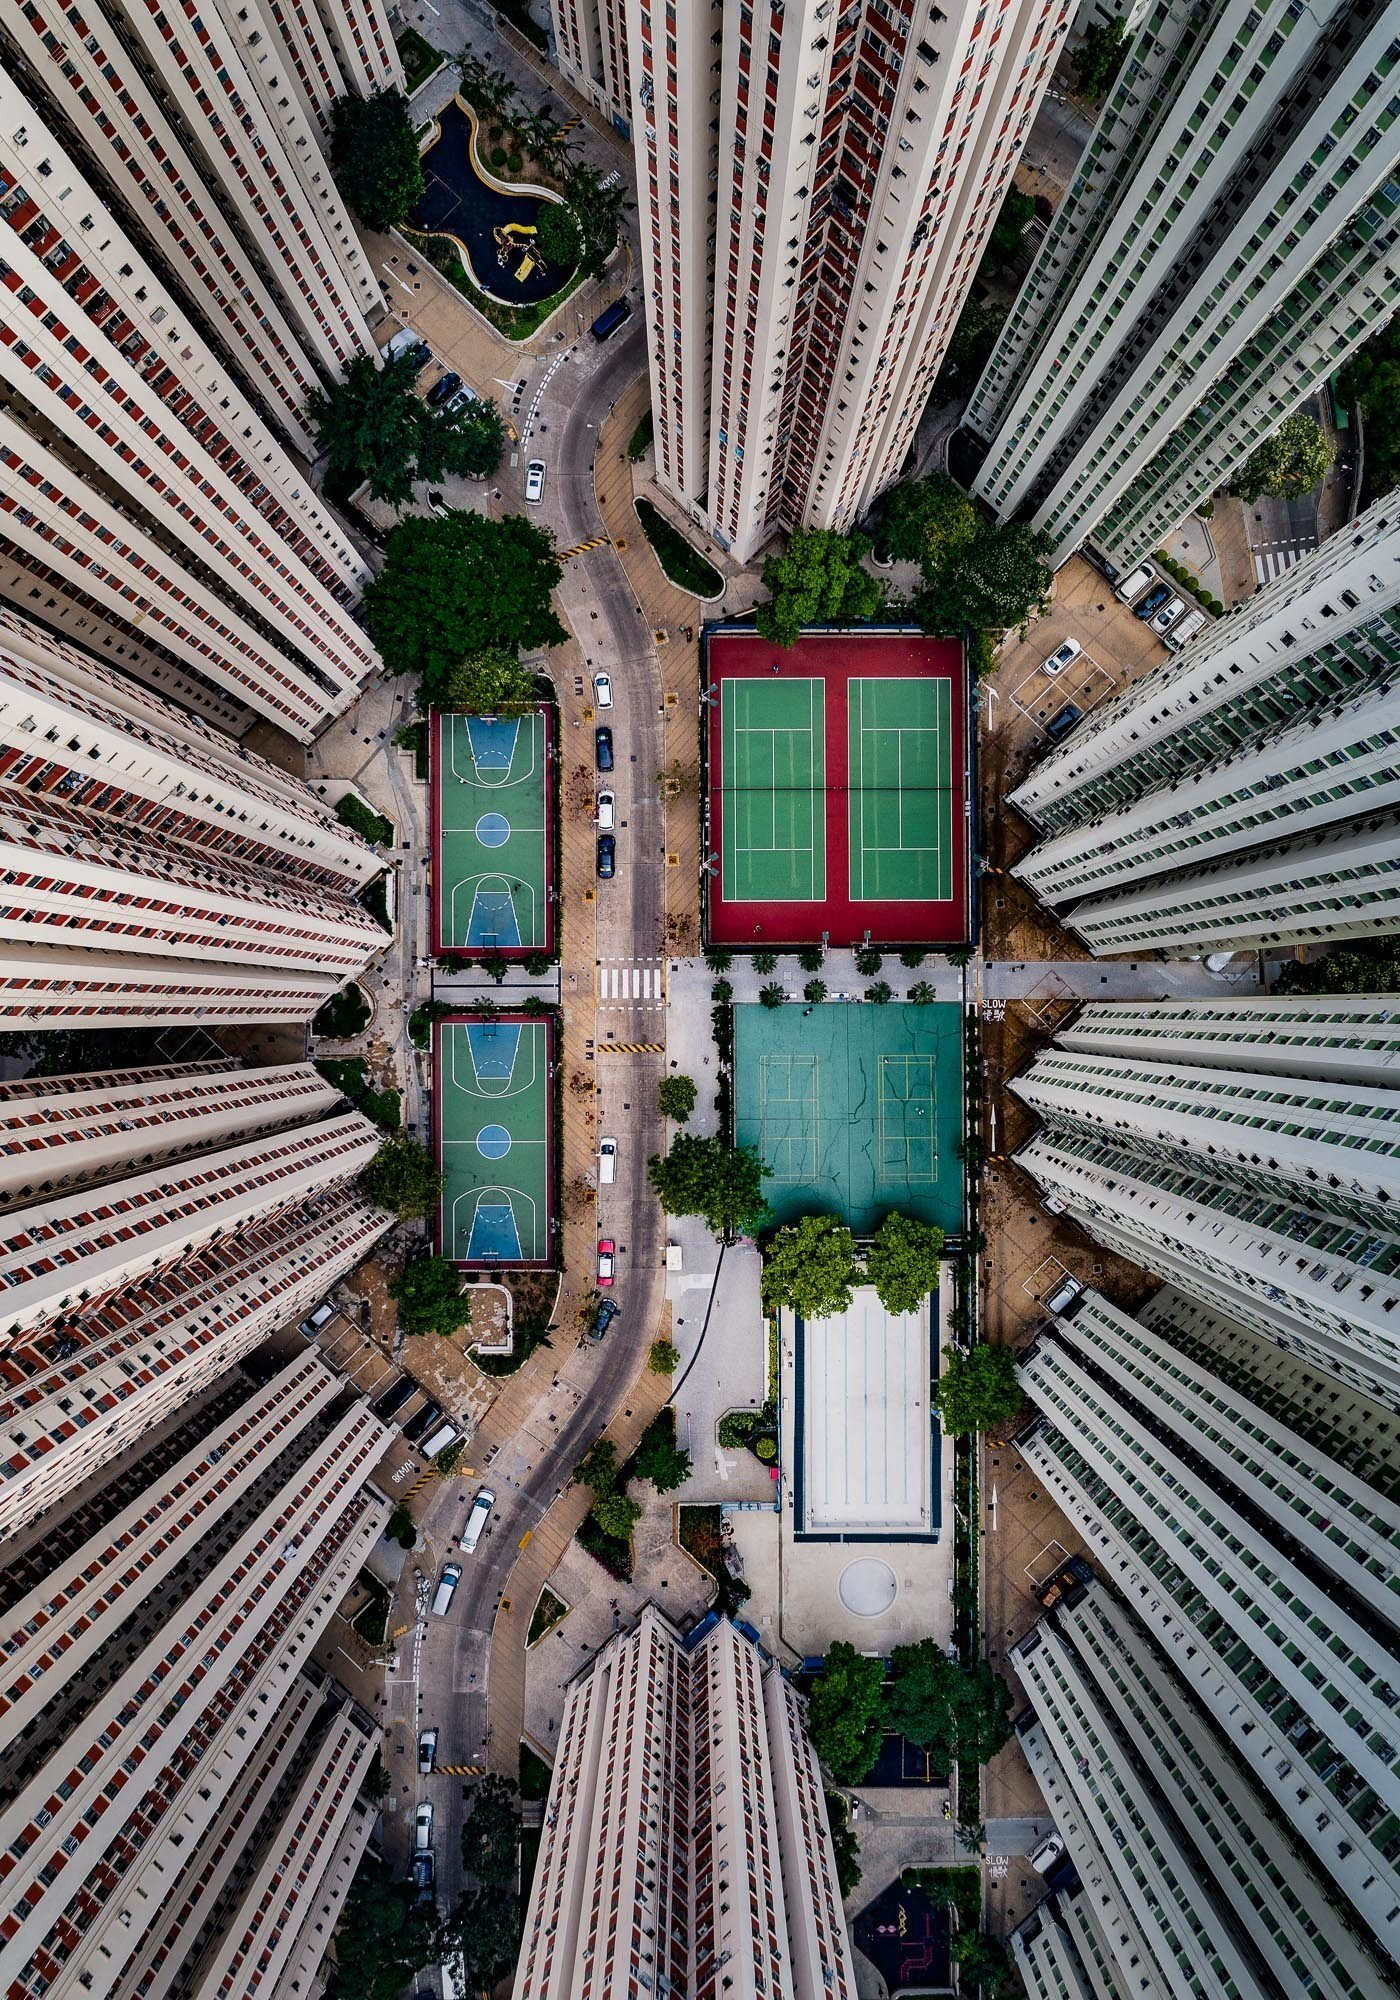 Tennis courts within buildings in Hong Kong